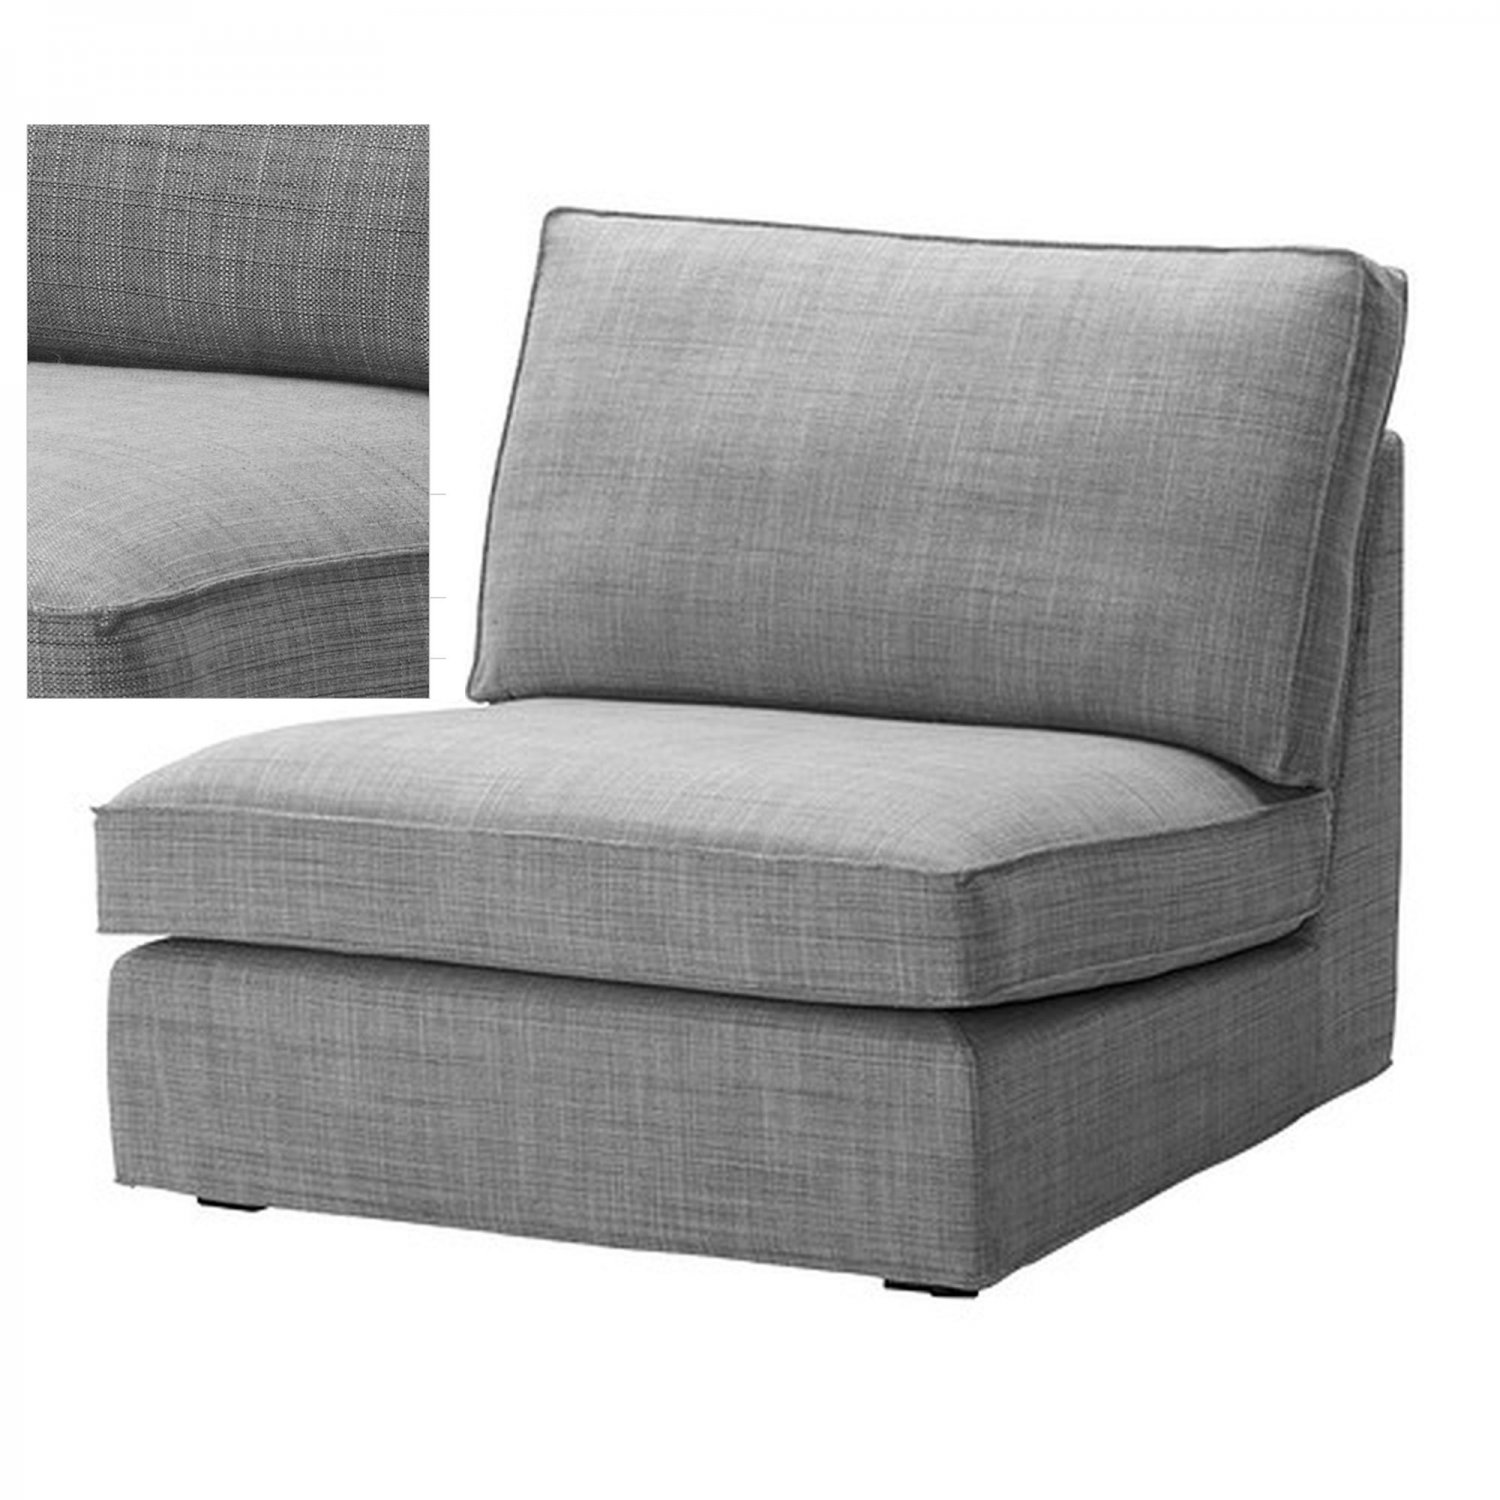 IKEA KIVIK 1 Seat Sofa SLIPCOVER OneSeat Chair Cover